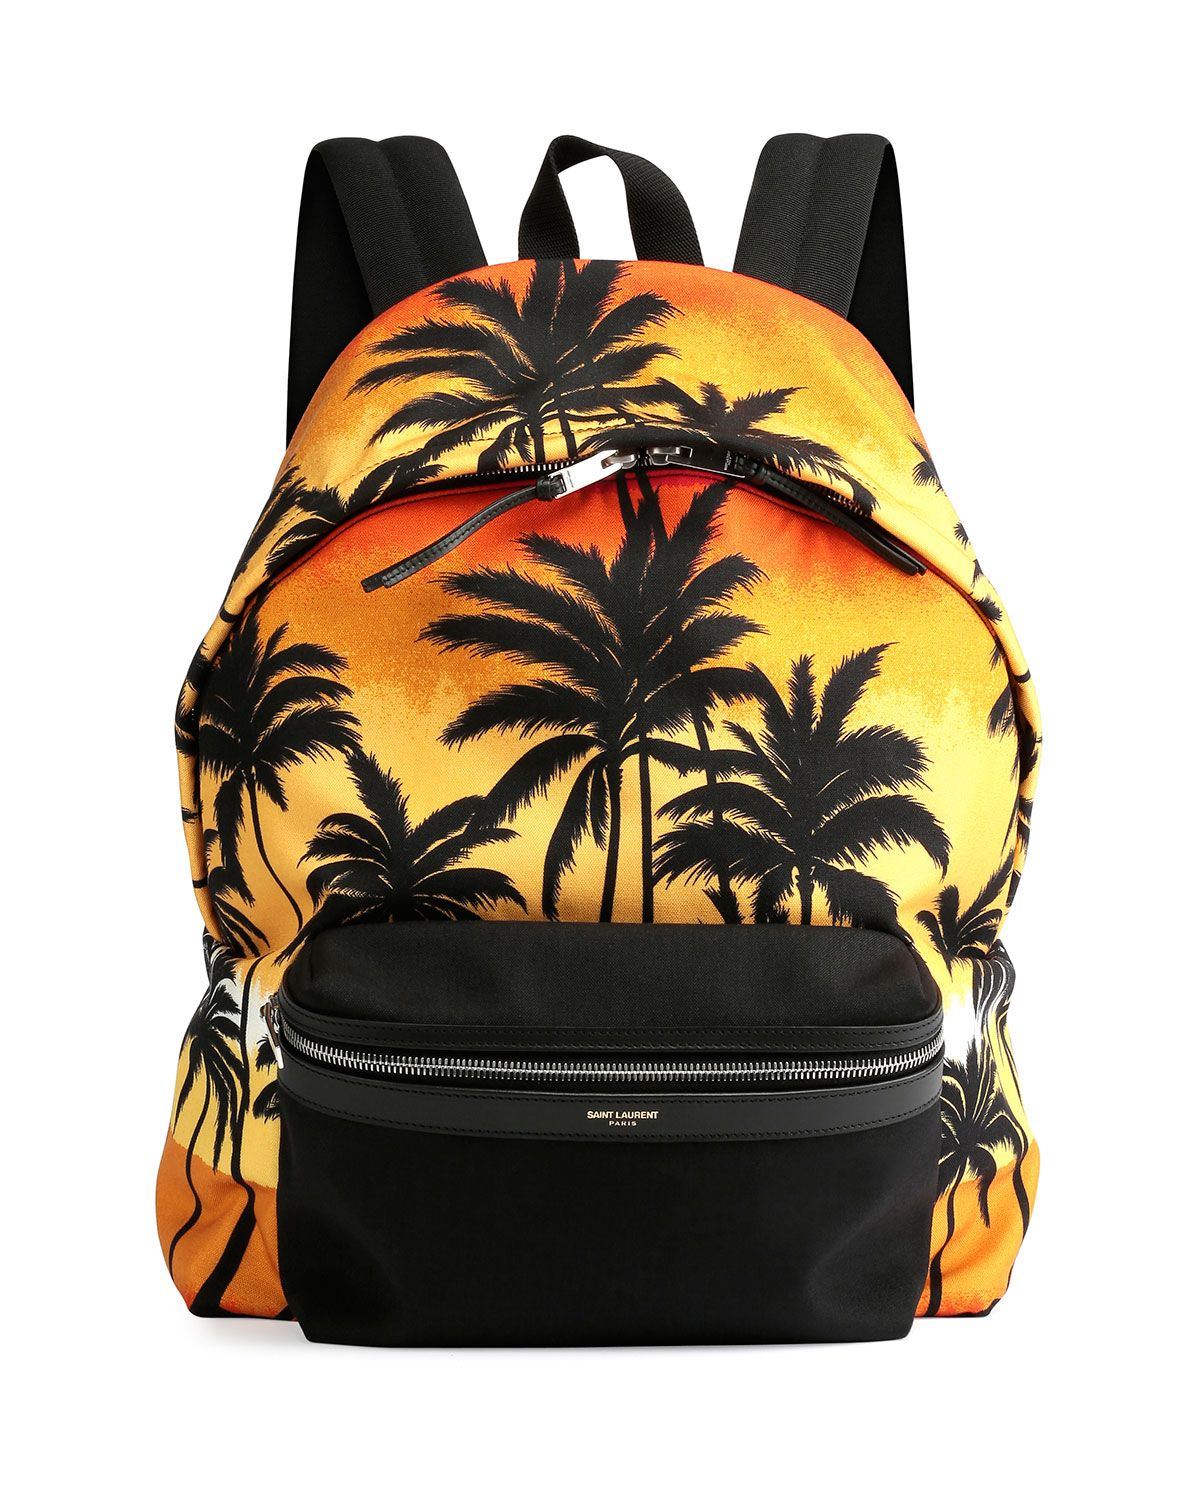 049c8e250689 Yves Saint Laurent Palm Tree Printed Backpack